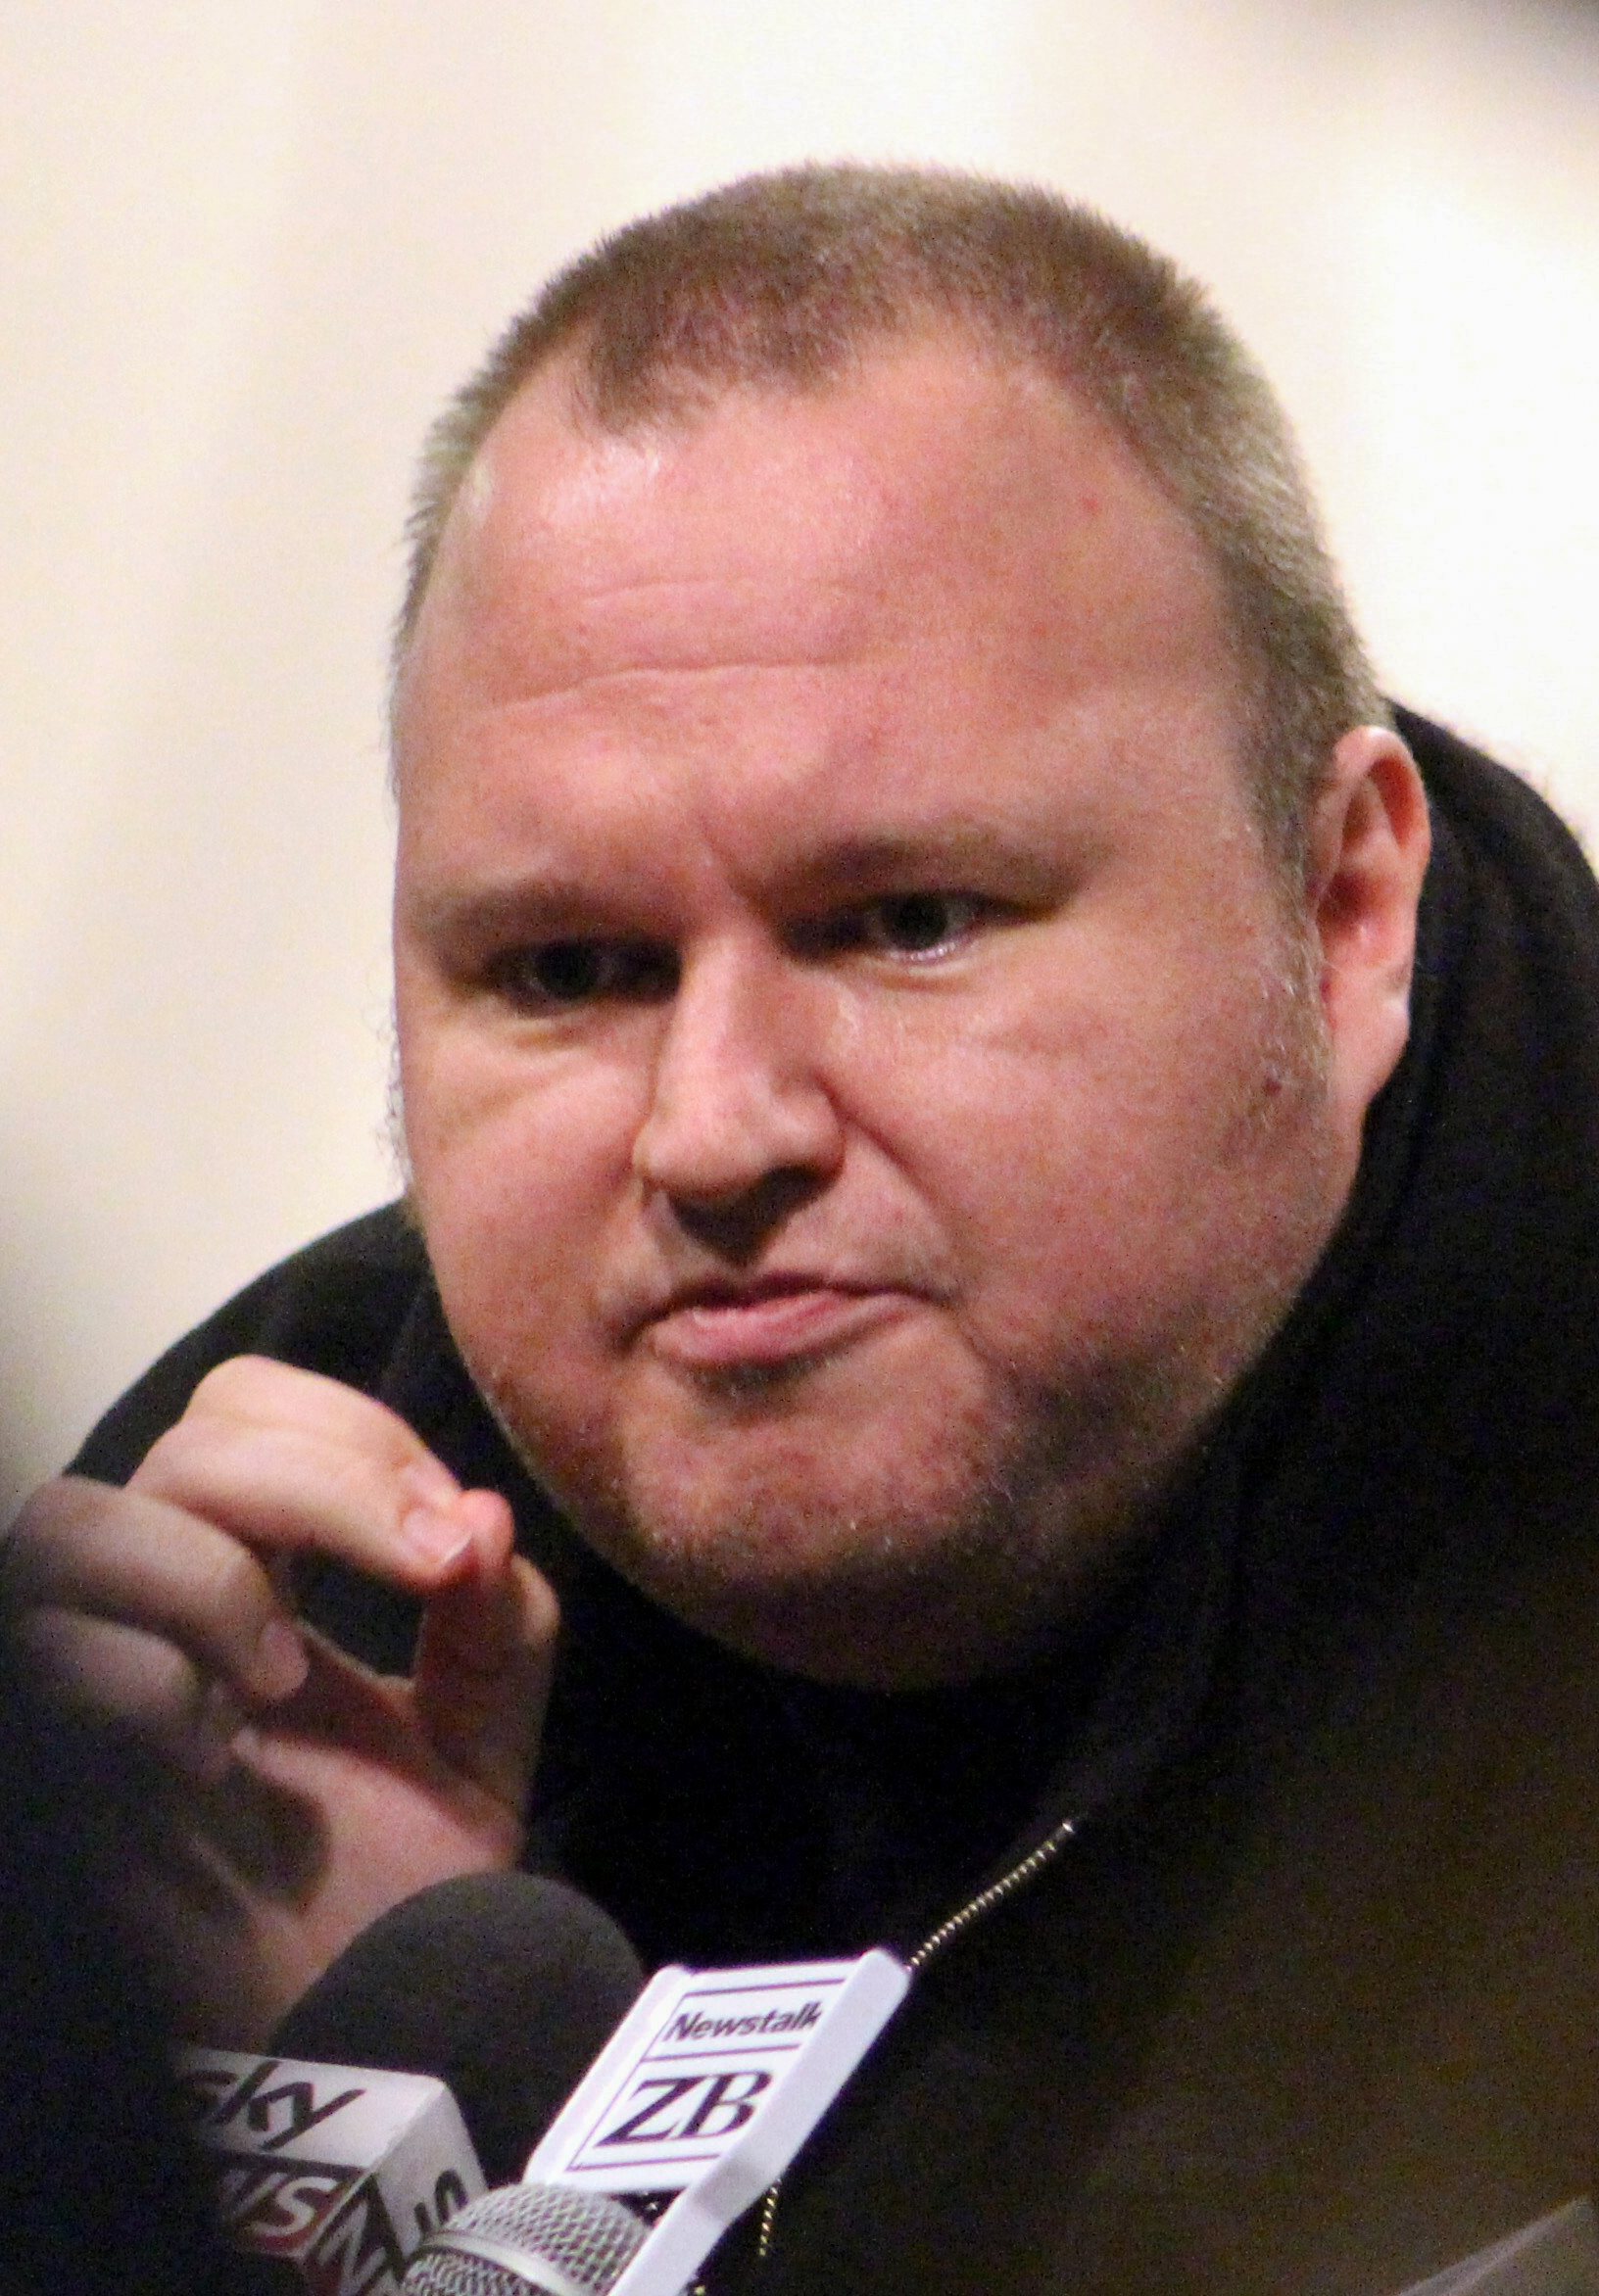 The 44-year old son of father (?) and mother(?) Kim Dotcom in 2018 photo. Kim Dotcom earned a  million dollar salary - leaving the net worth at 200 million in 2018